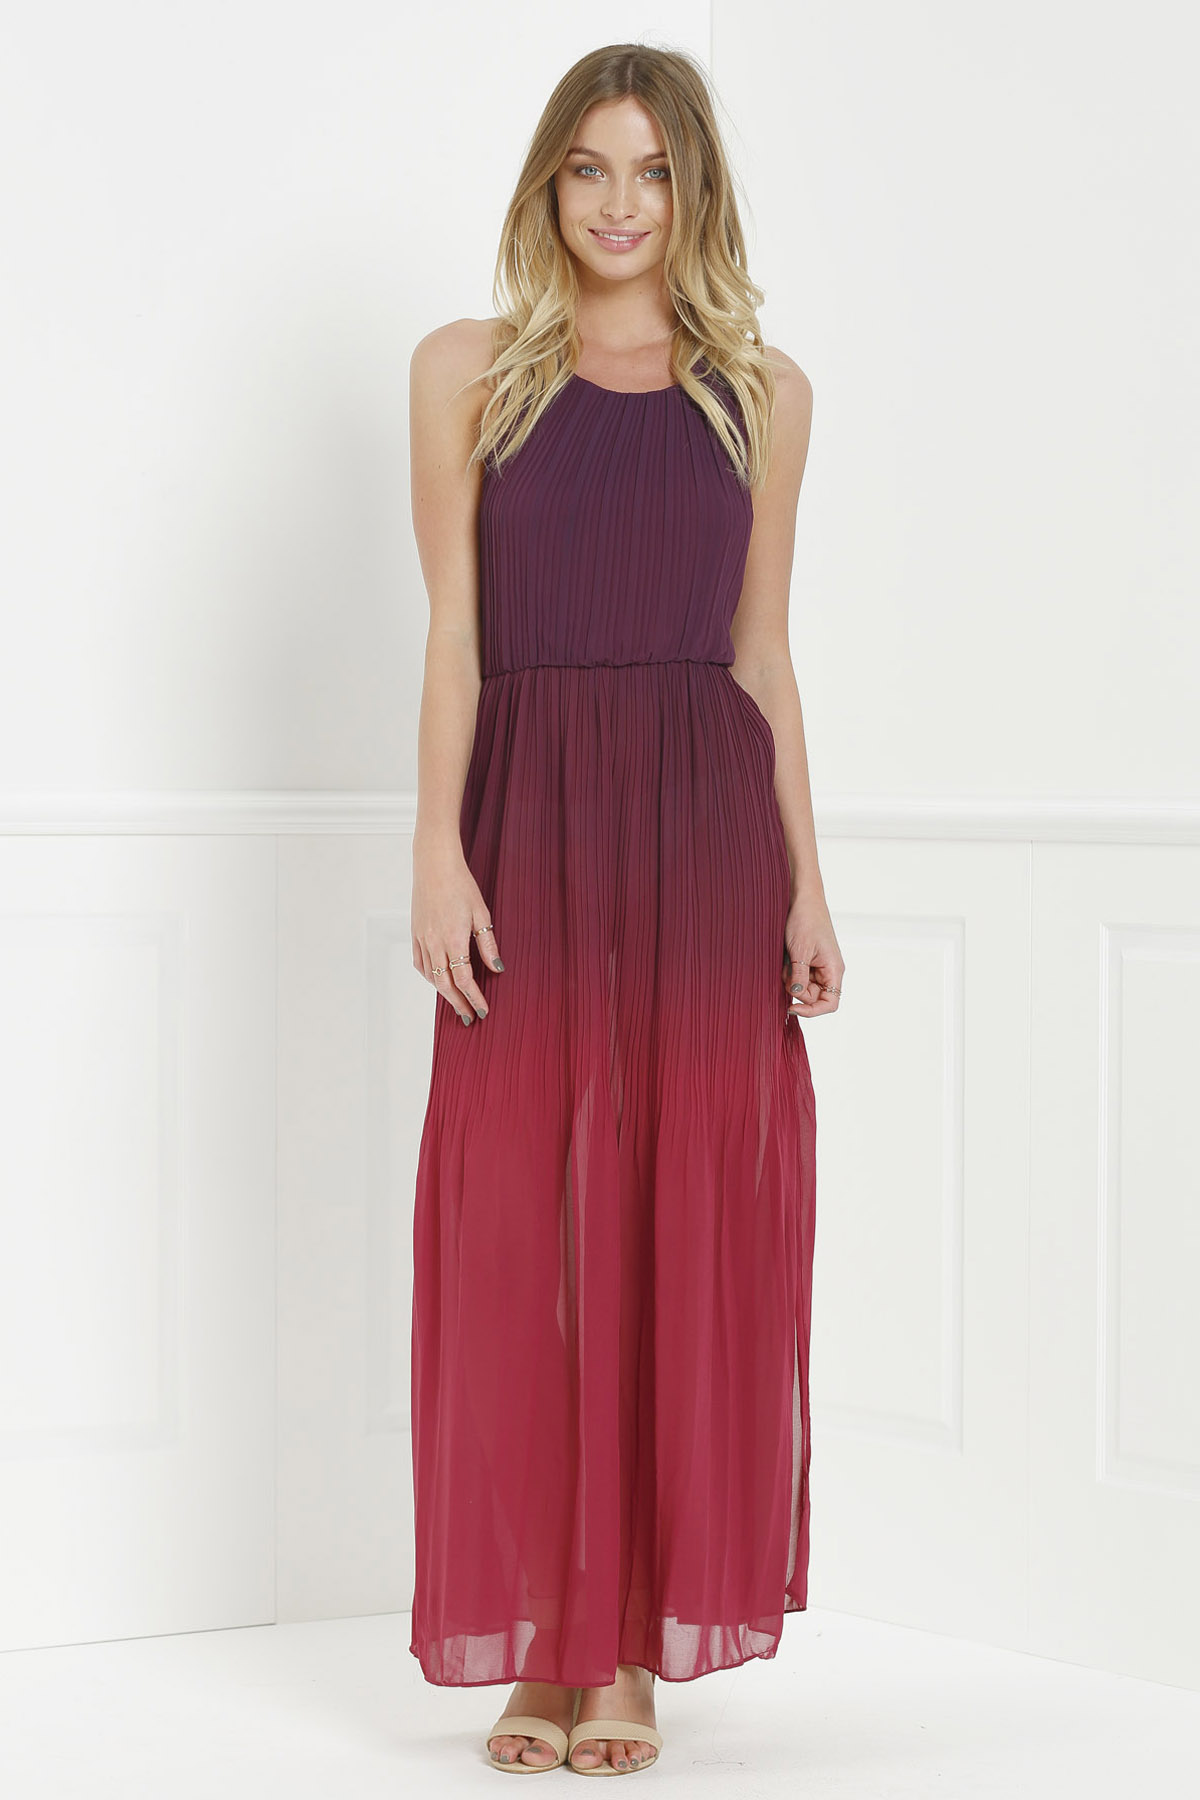 Halter Neck Sleeveless Ombre Color High Slit Maxi Dress